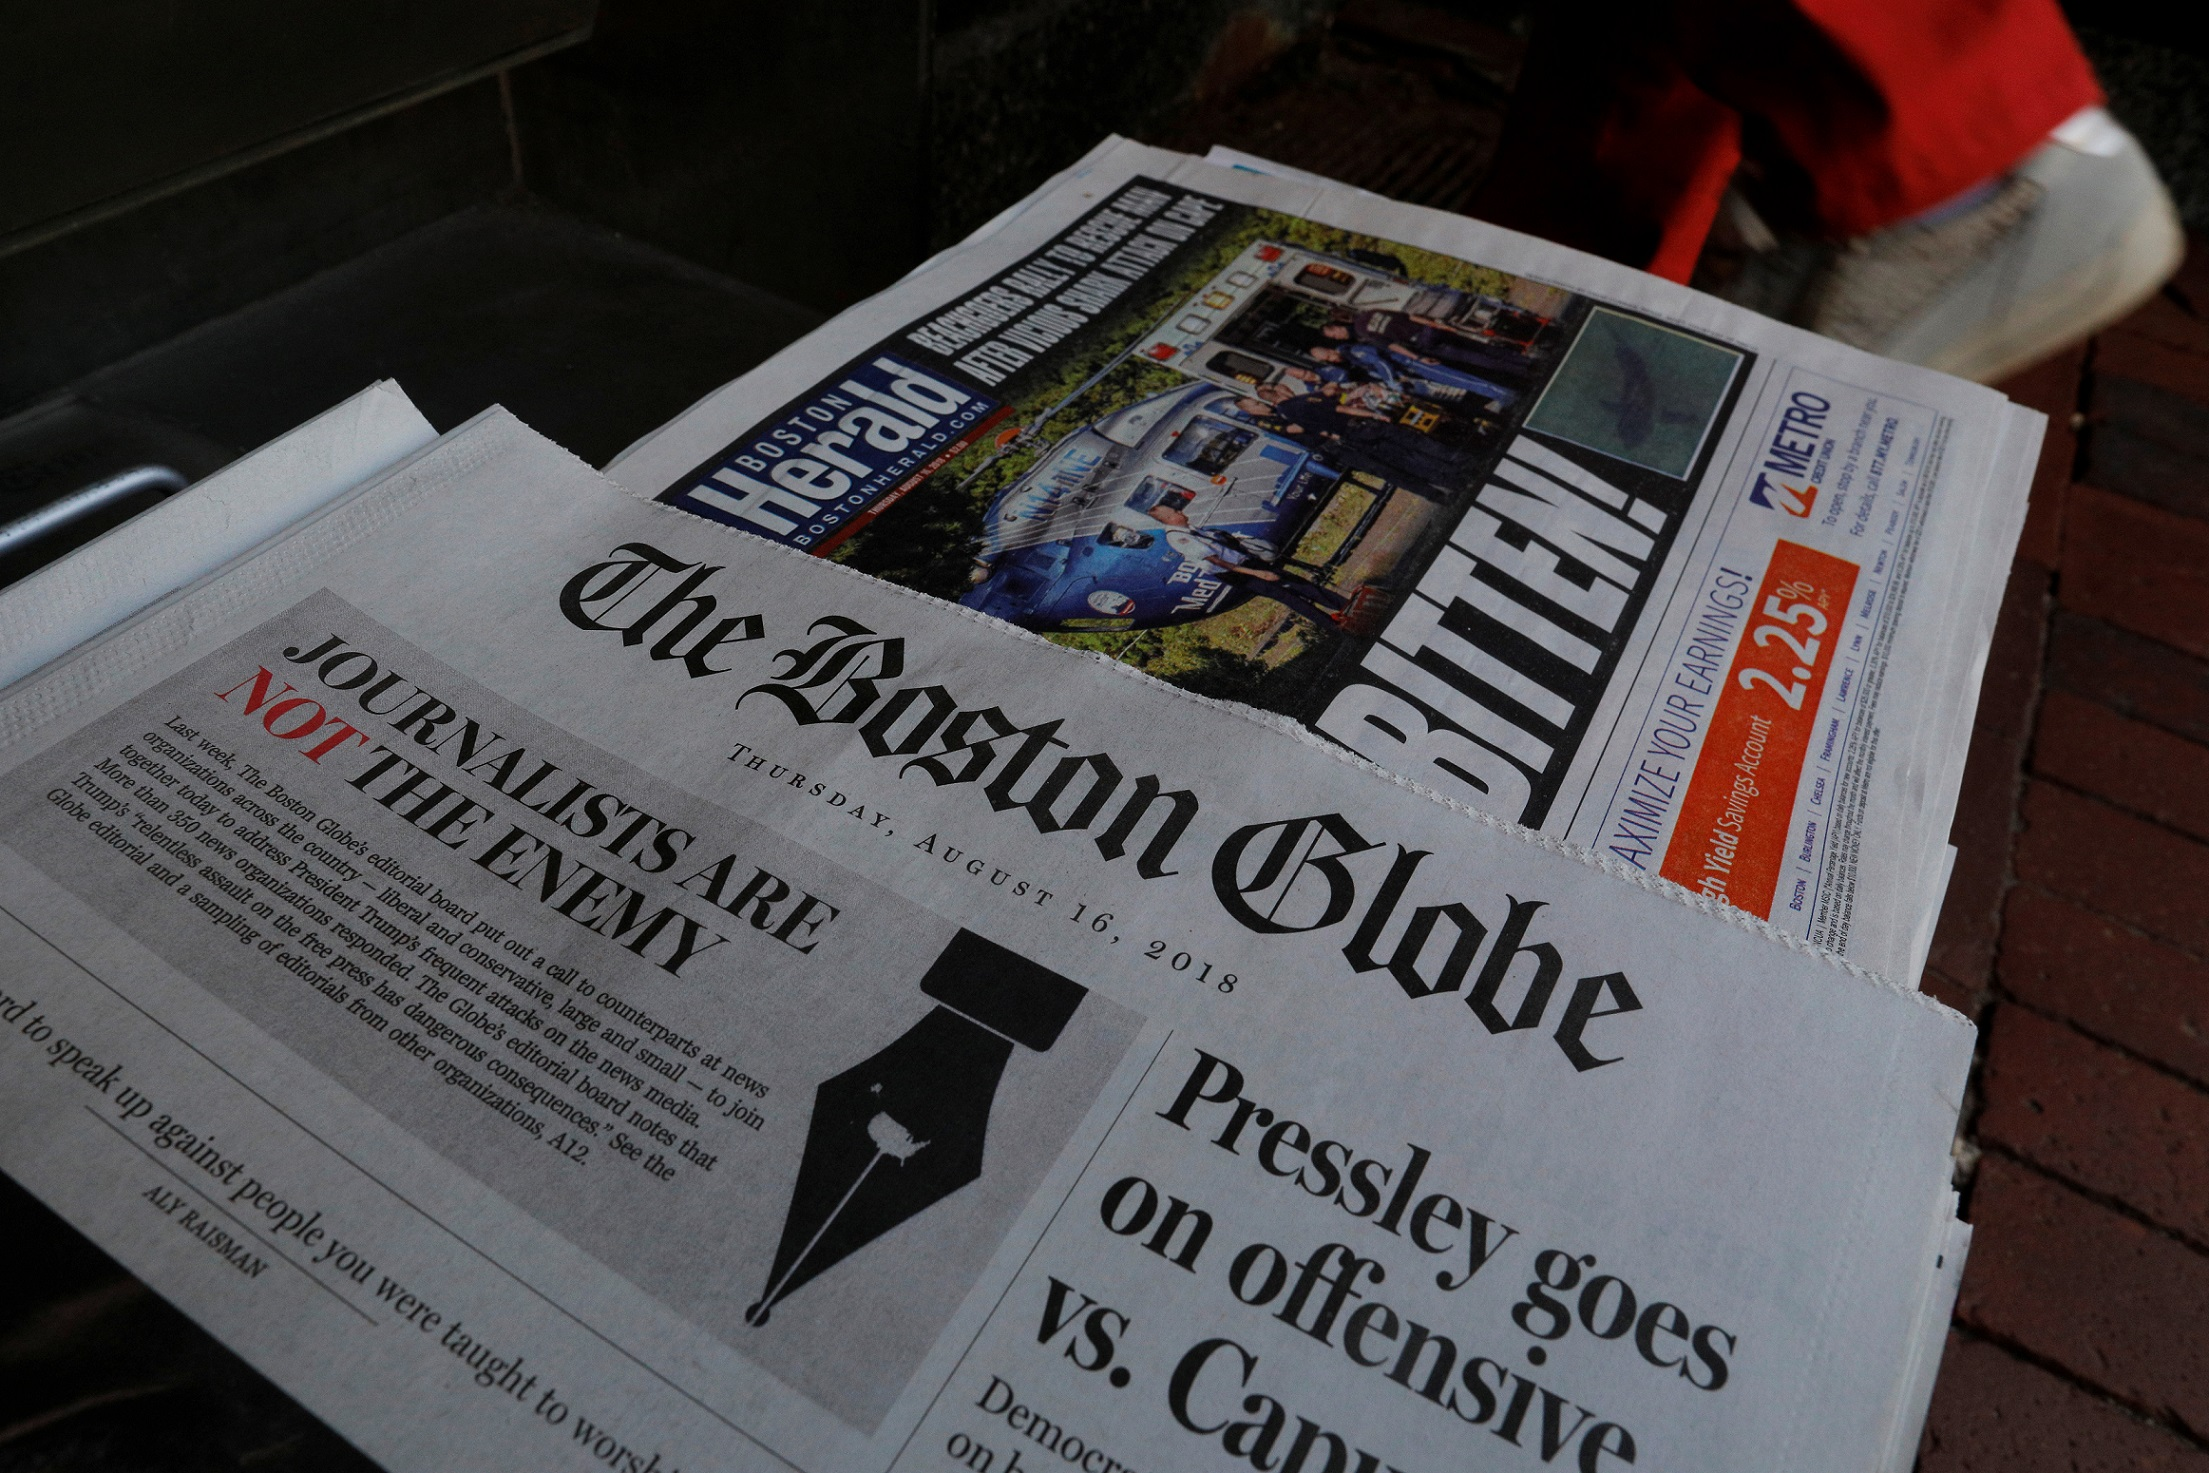 A customer walks past the front page of the Boston Globe newspaper referencing their editorial defense of press freedom and a rebuke of President Donald Trump for denouncing some media organizations as enemies of the American people, part of a nationwide editorial effort coordinated by the Boston Globe, at a newsstand in Cambridge, Massachusetts, U.S., August 16, 2018.     REUTERS/Brian Snyder - RC13AB4553F0